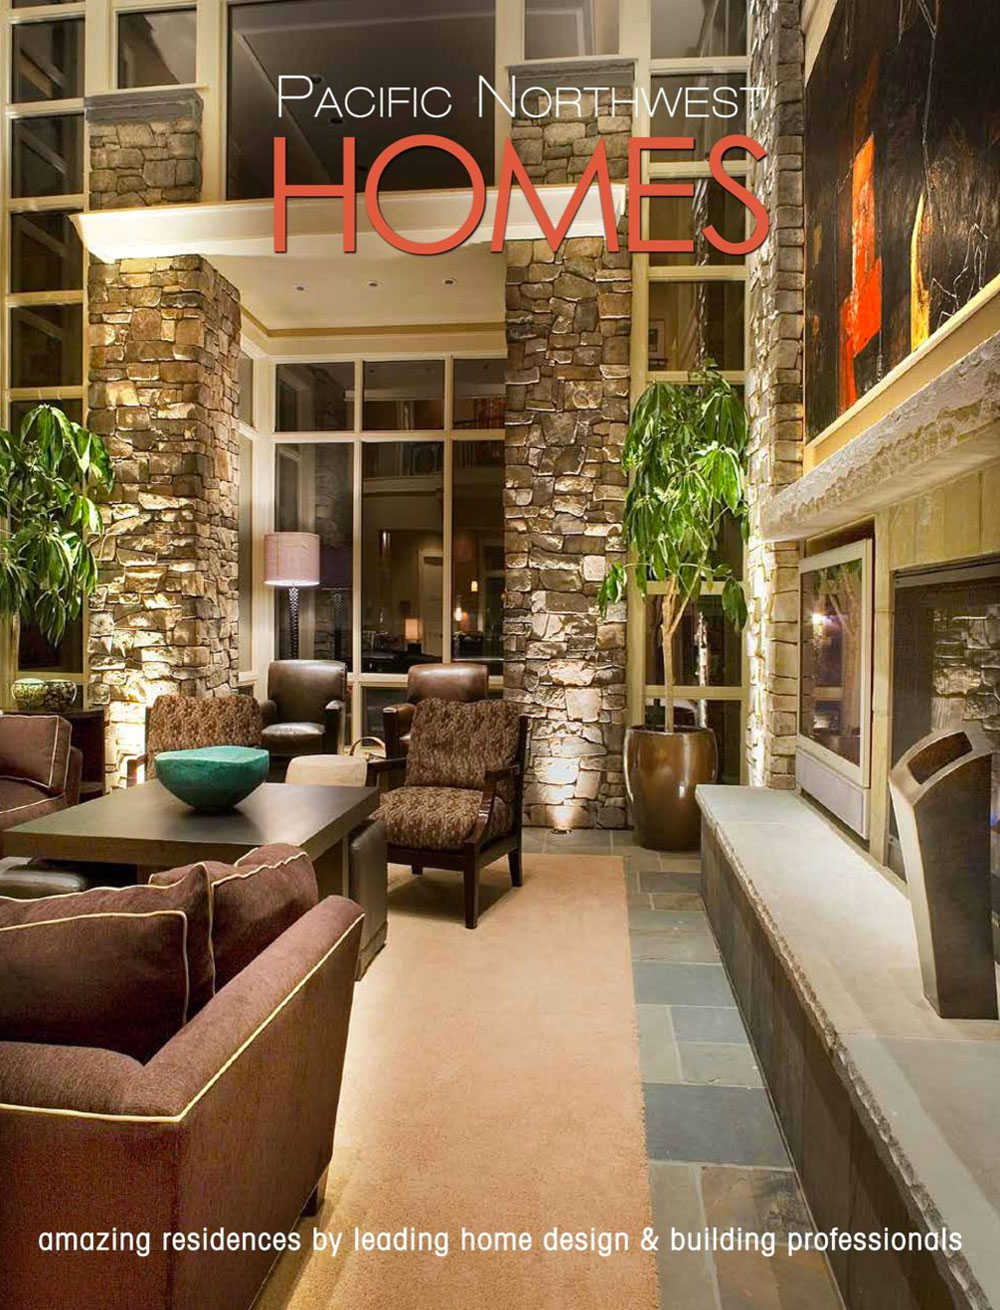 Pacific Northwest Homes - The publication features luxury homes designed and built by the region's leading architects, custom builders and interior designers in the Pacific Northwest.View DTF Design Featurein Pacific Northwest Homes.Publication: Panache PartnersYear: 2017